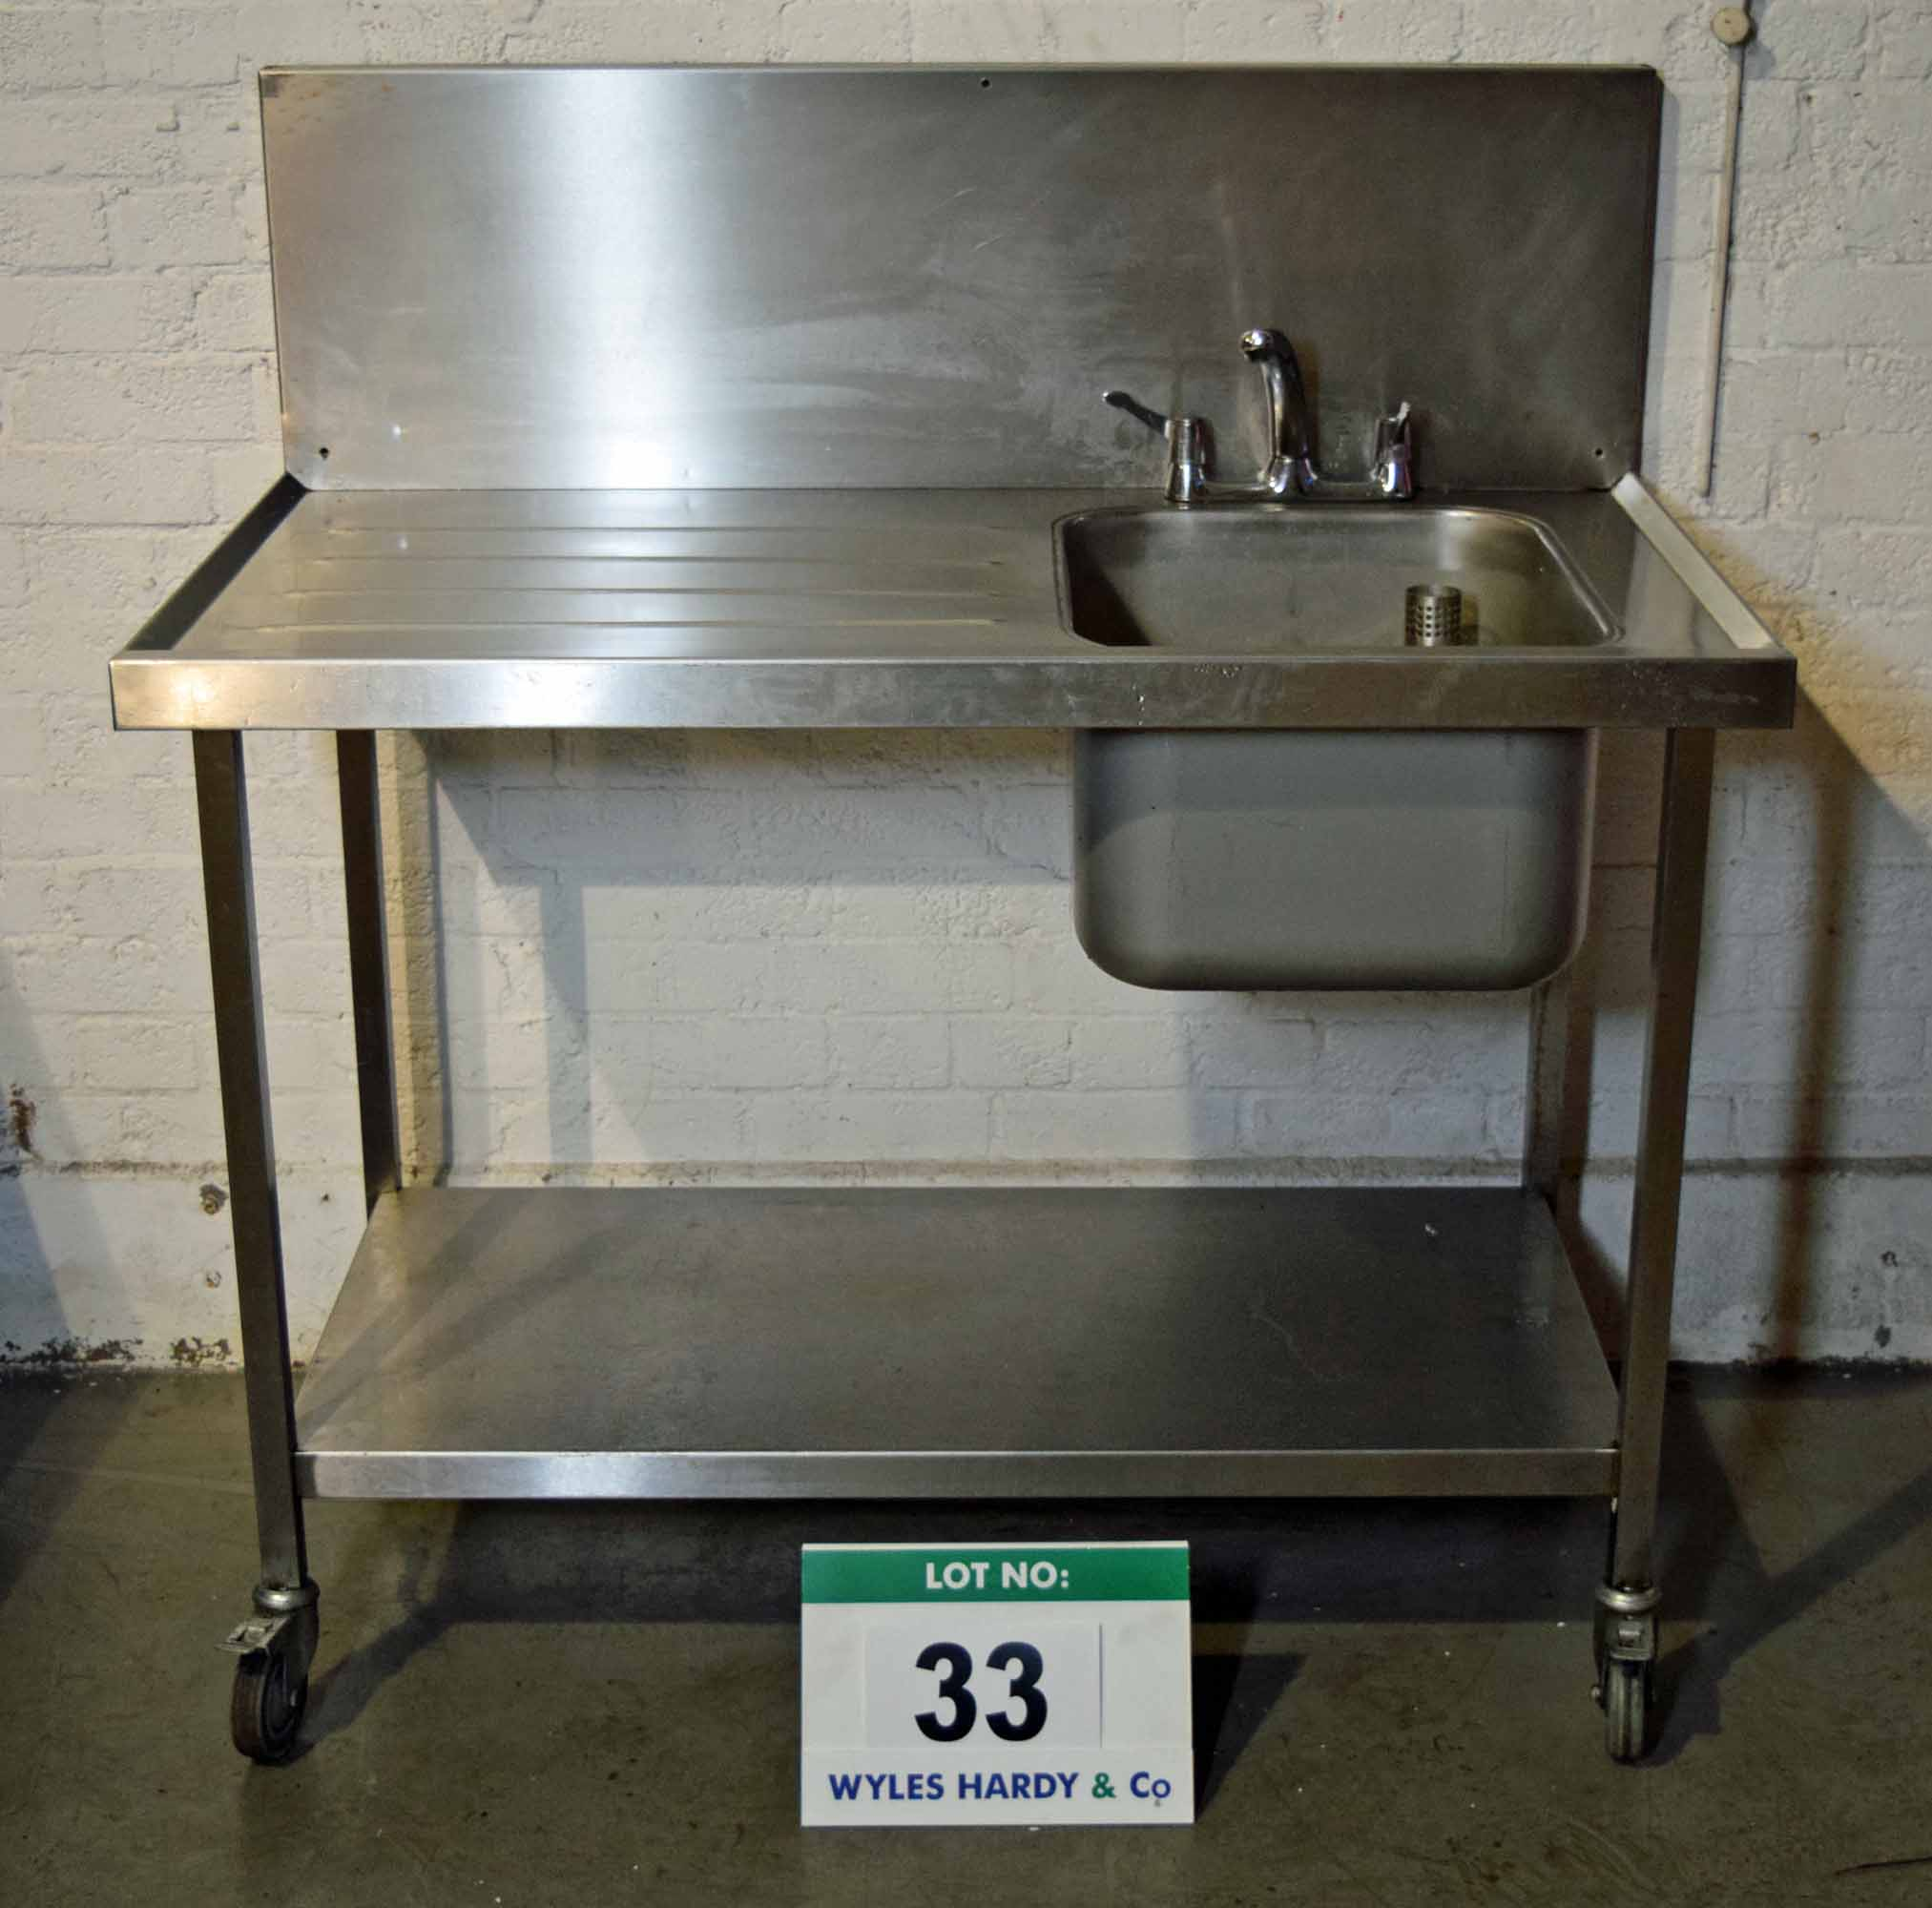 Lot 33 - A 1200mm Stainless Steel Single Bowl, Single Drainer Kitchen Sink on Castor Wheels, fitted Mixer Tap